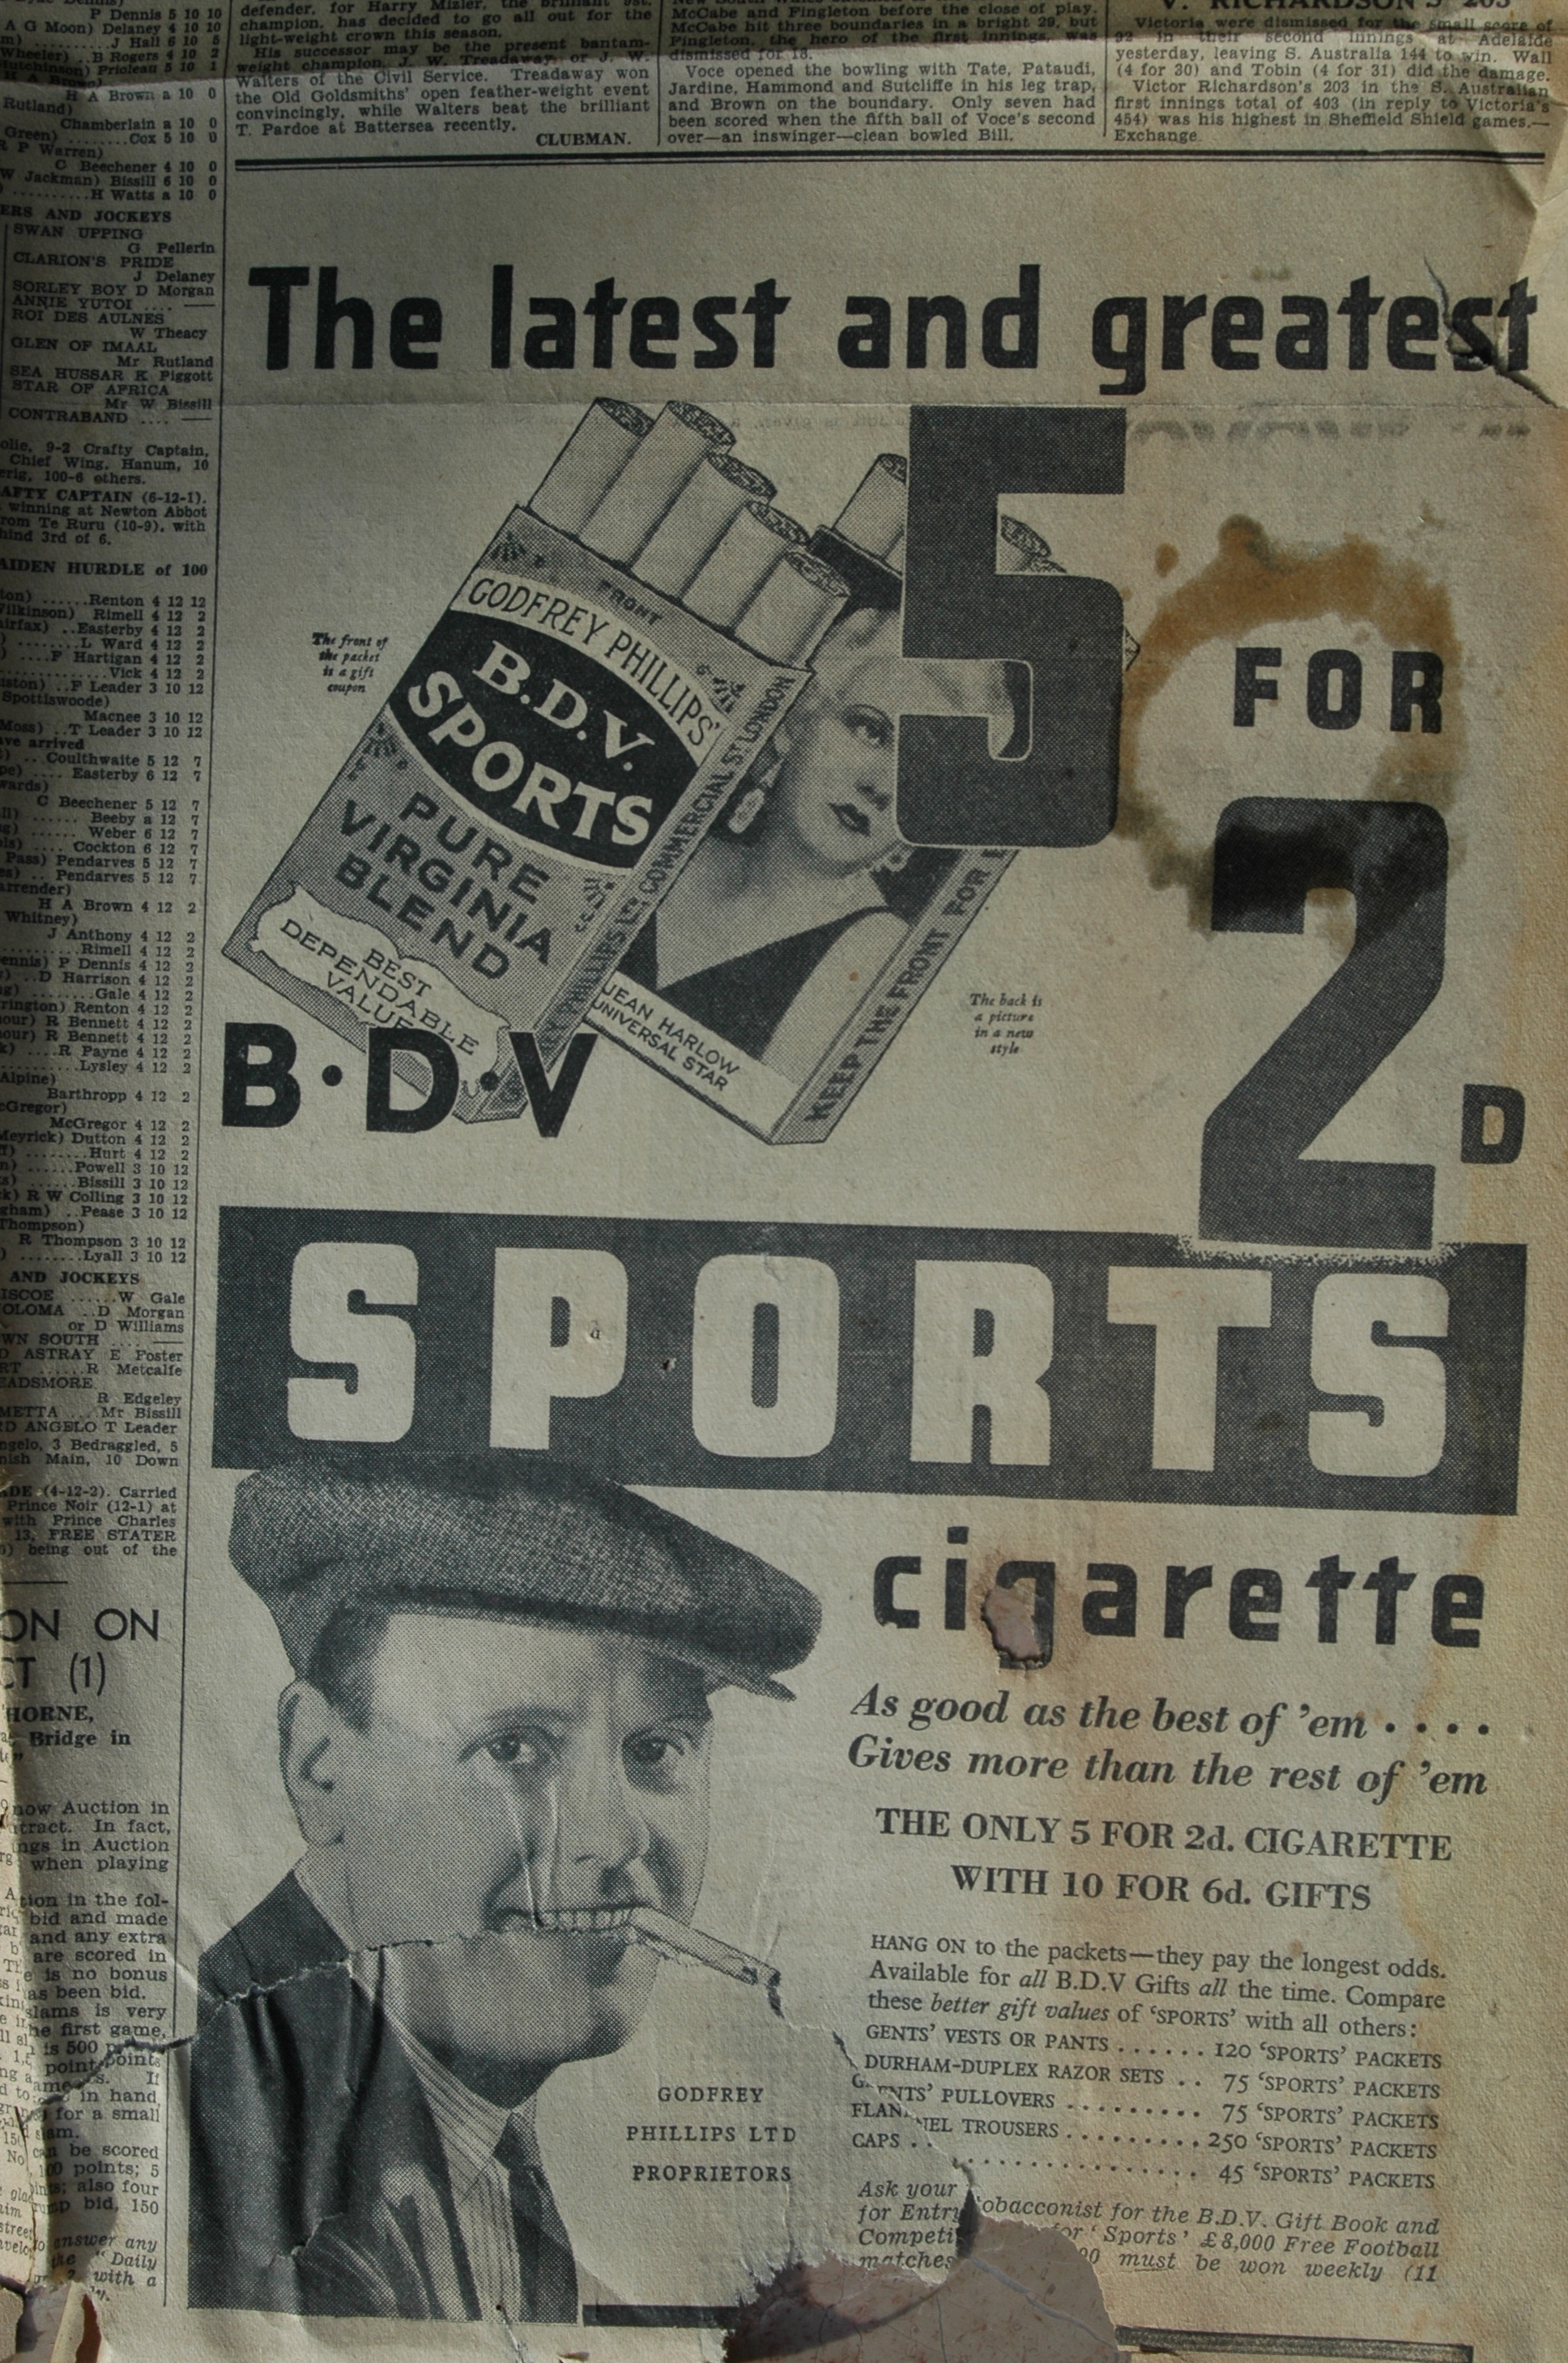 1932 cigarette advertisement